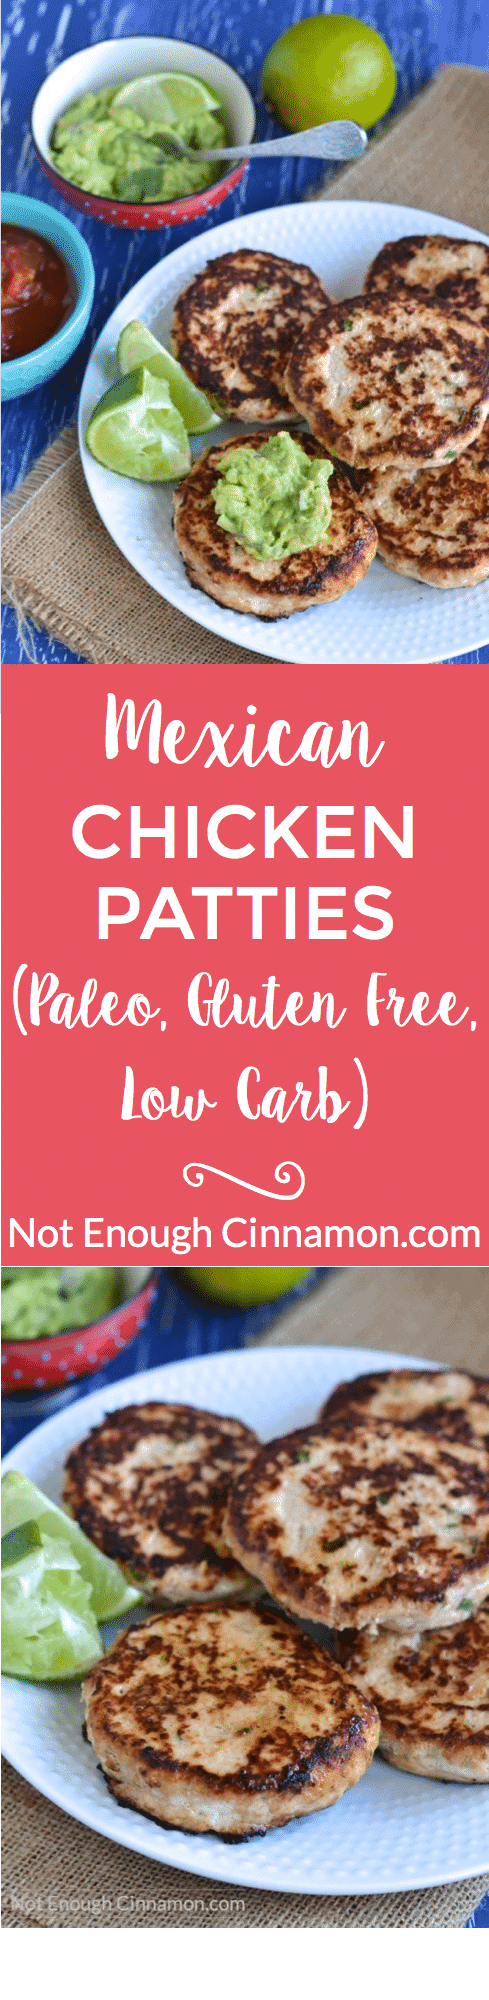 Easy to make and delicious, these gluten free Mexican chicken patties will be a hit for dinner with your whole family! #recipe #paleo #glutenfree #low carb